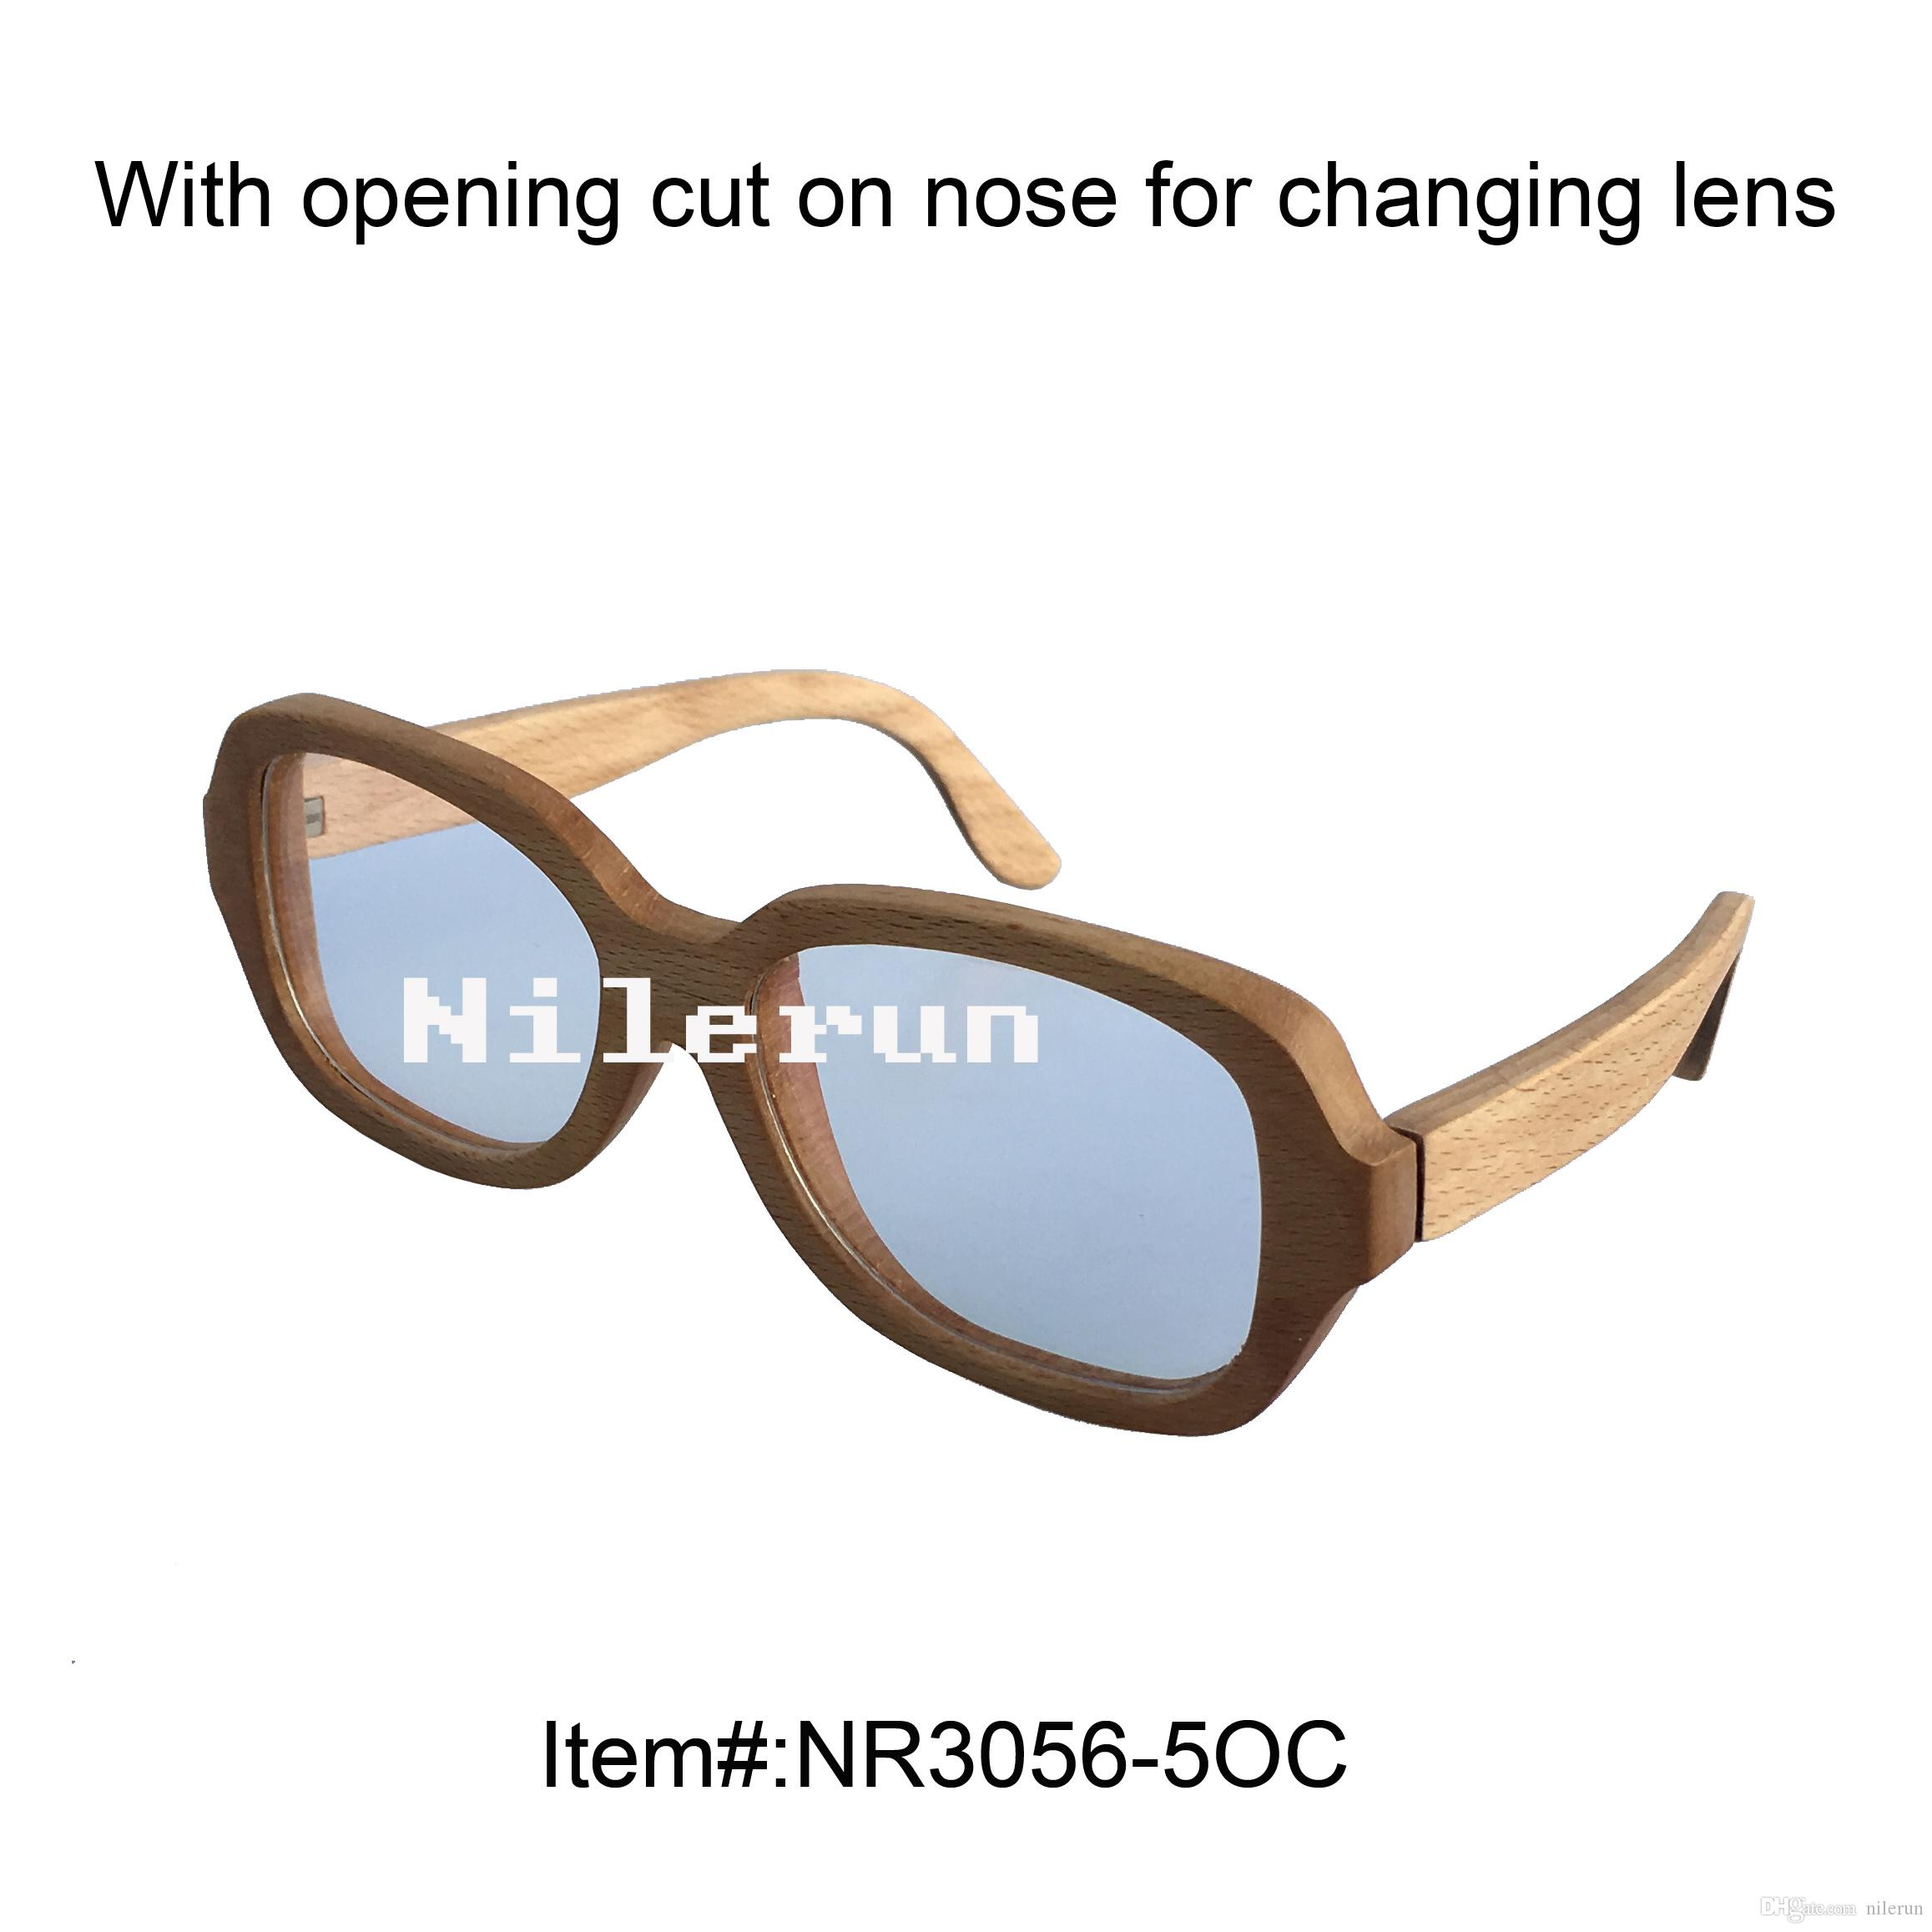 fd690d1712 Fashion Wood Eyewear Wood Eyewear Wood Eyeglasses Wood Glasses Online with   43.6 Piece on Nilerun s Store